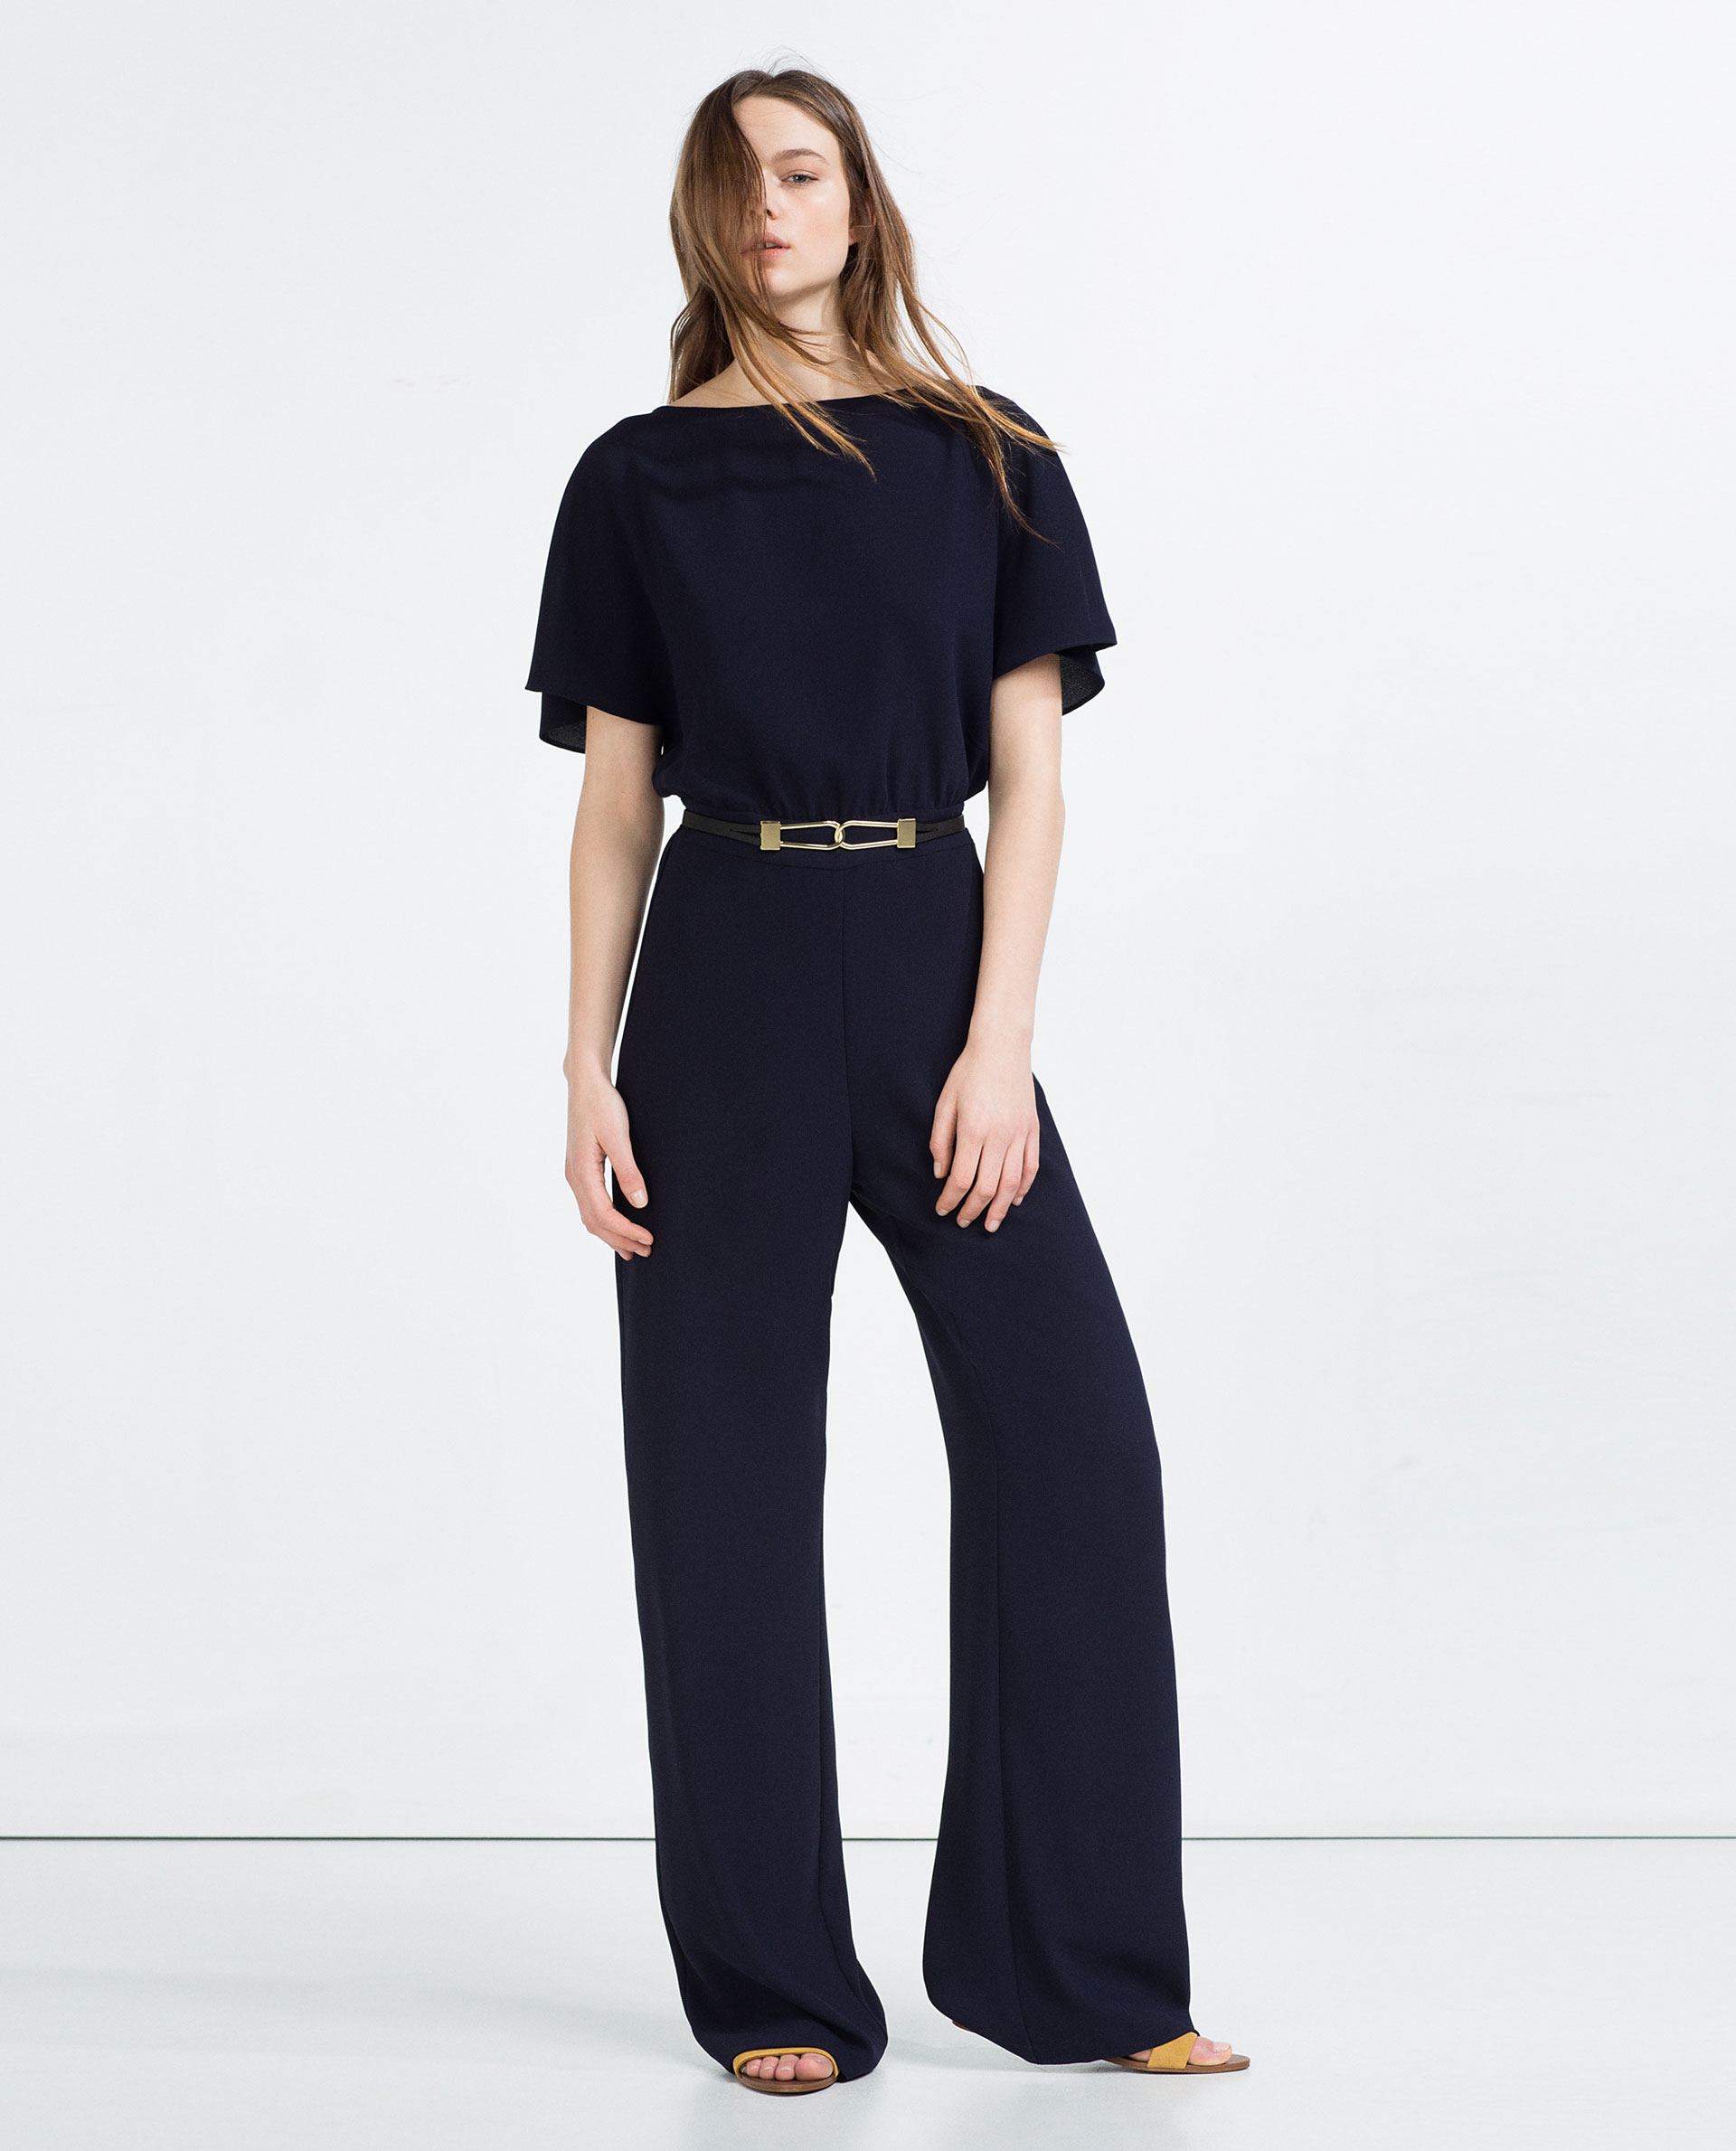 fashion jobs 5 jumpsuits for work fashion jobs in